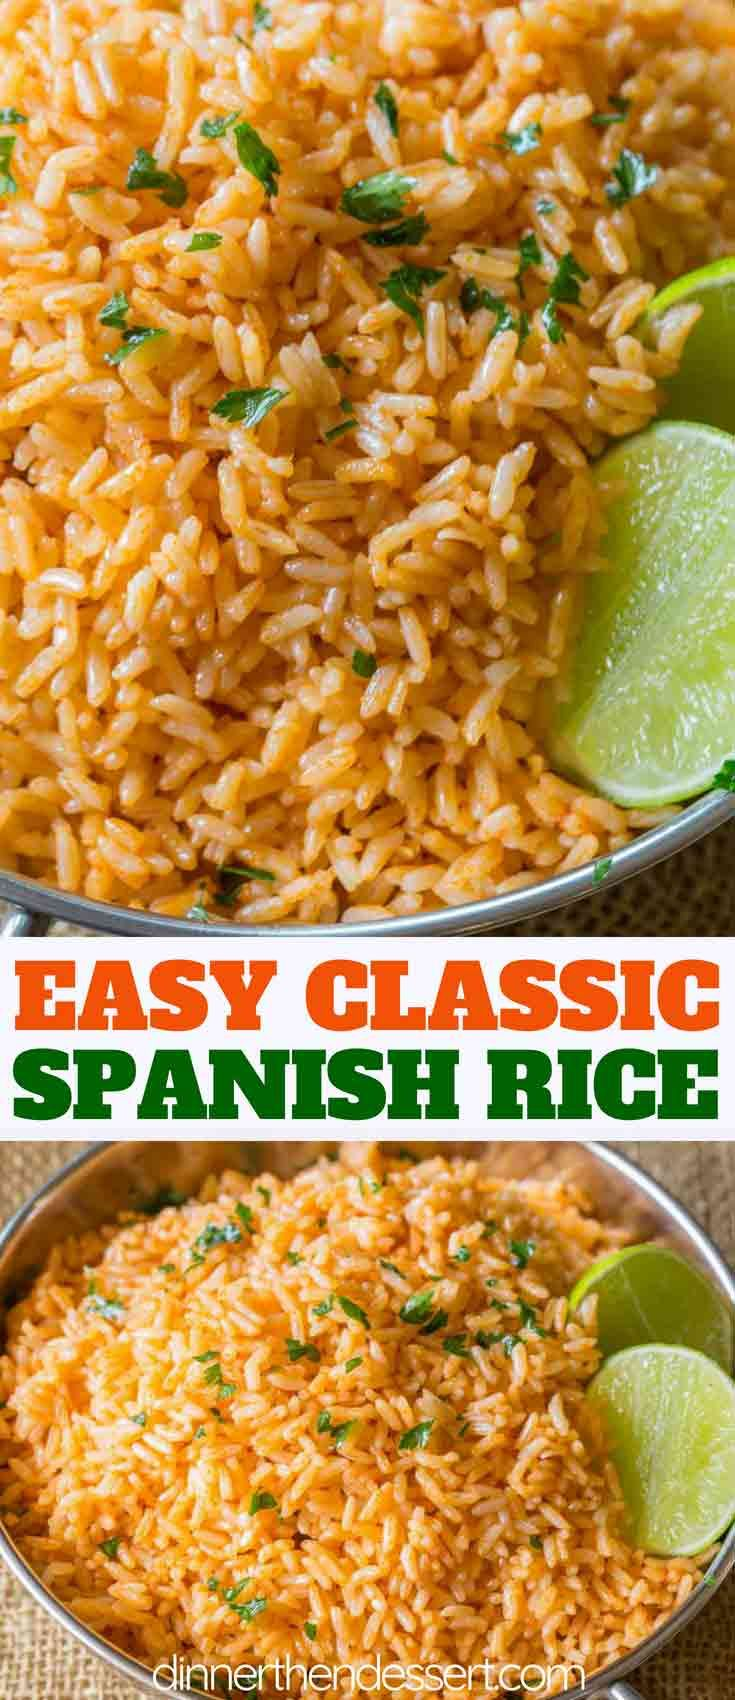 Easy Spanish Rice, also called Mexican Rice, that tastes just like your favorite restaurant side dish withwith an easy trick for perfectly fluffy rice! | #spanishrice #mexicanrice #mexicanfood #mexicanrecipes #dinnerthendessert #sidedish #rice #easyrecipes #dinnersidedishes